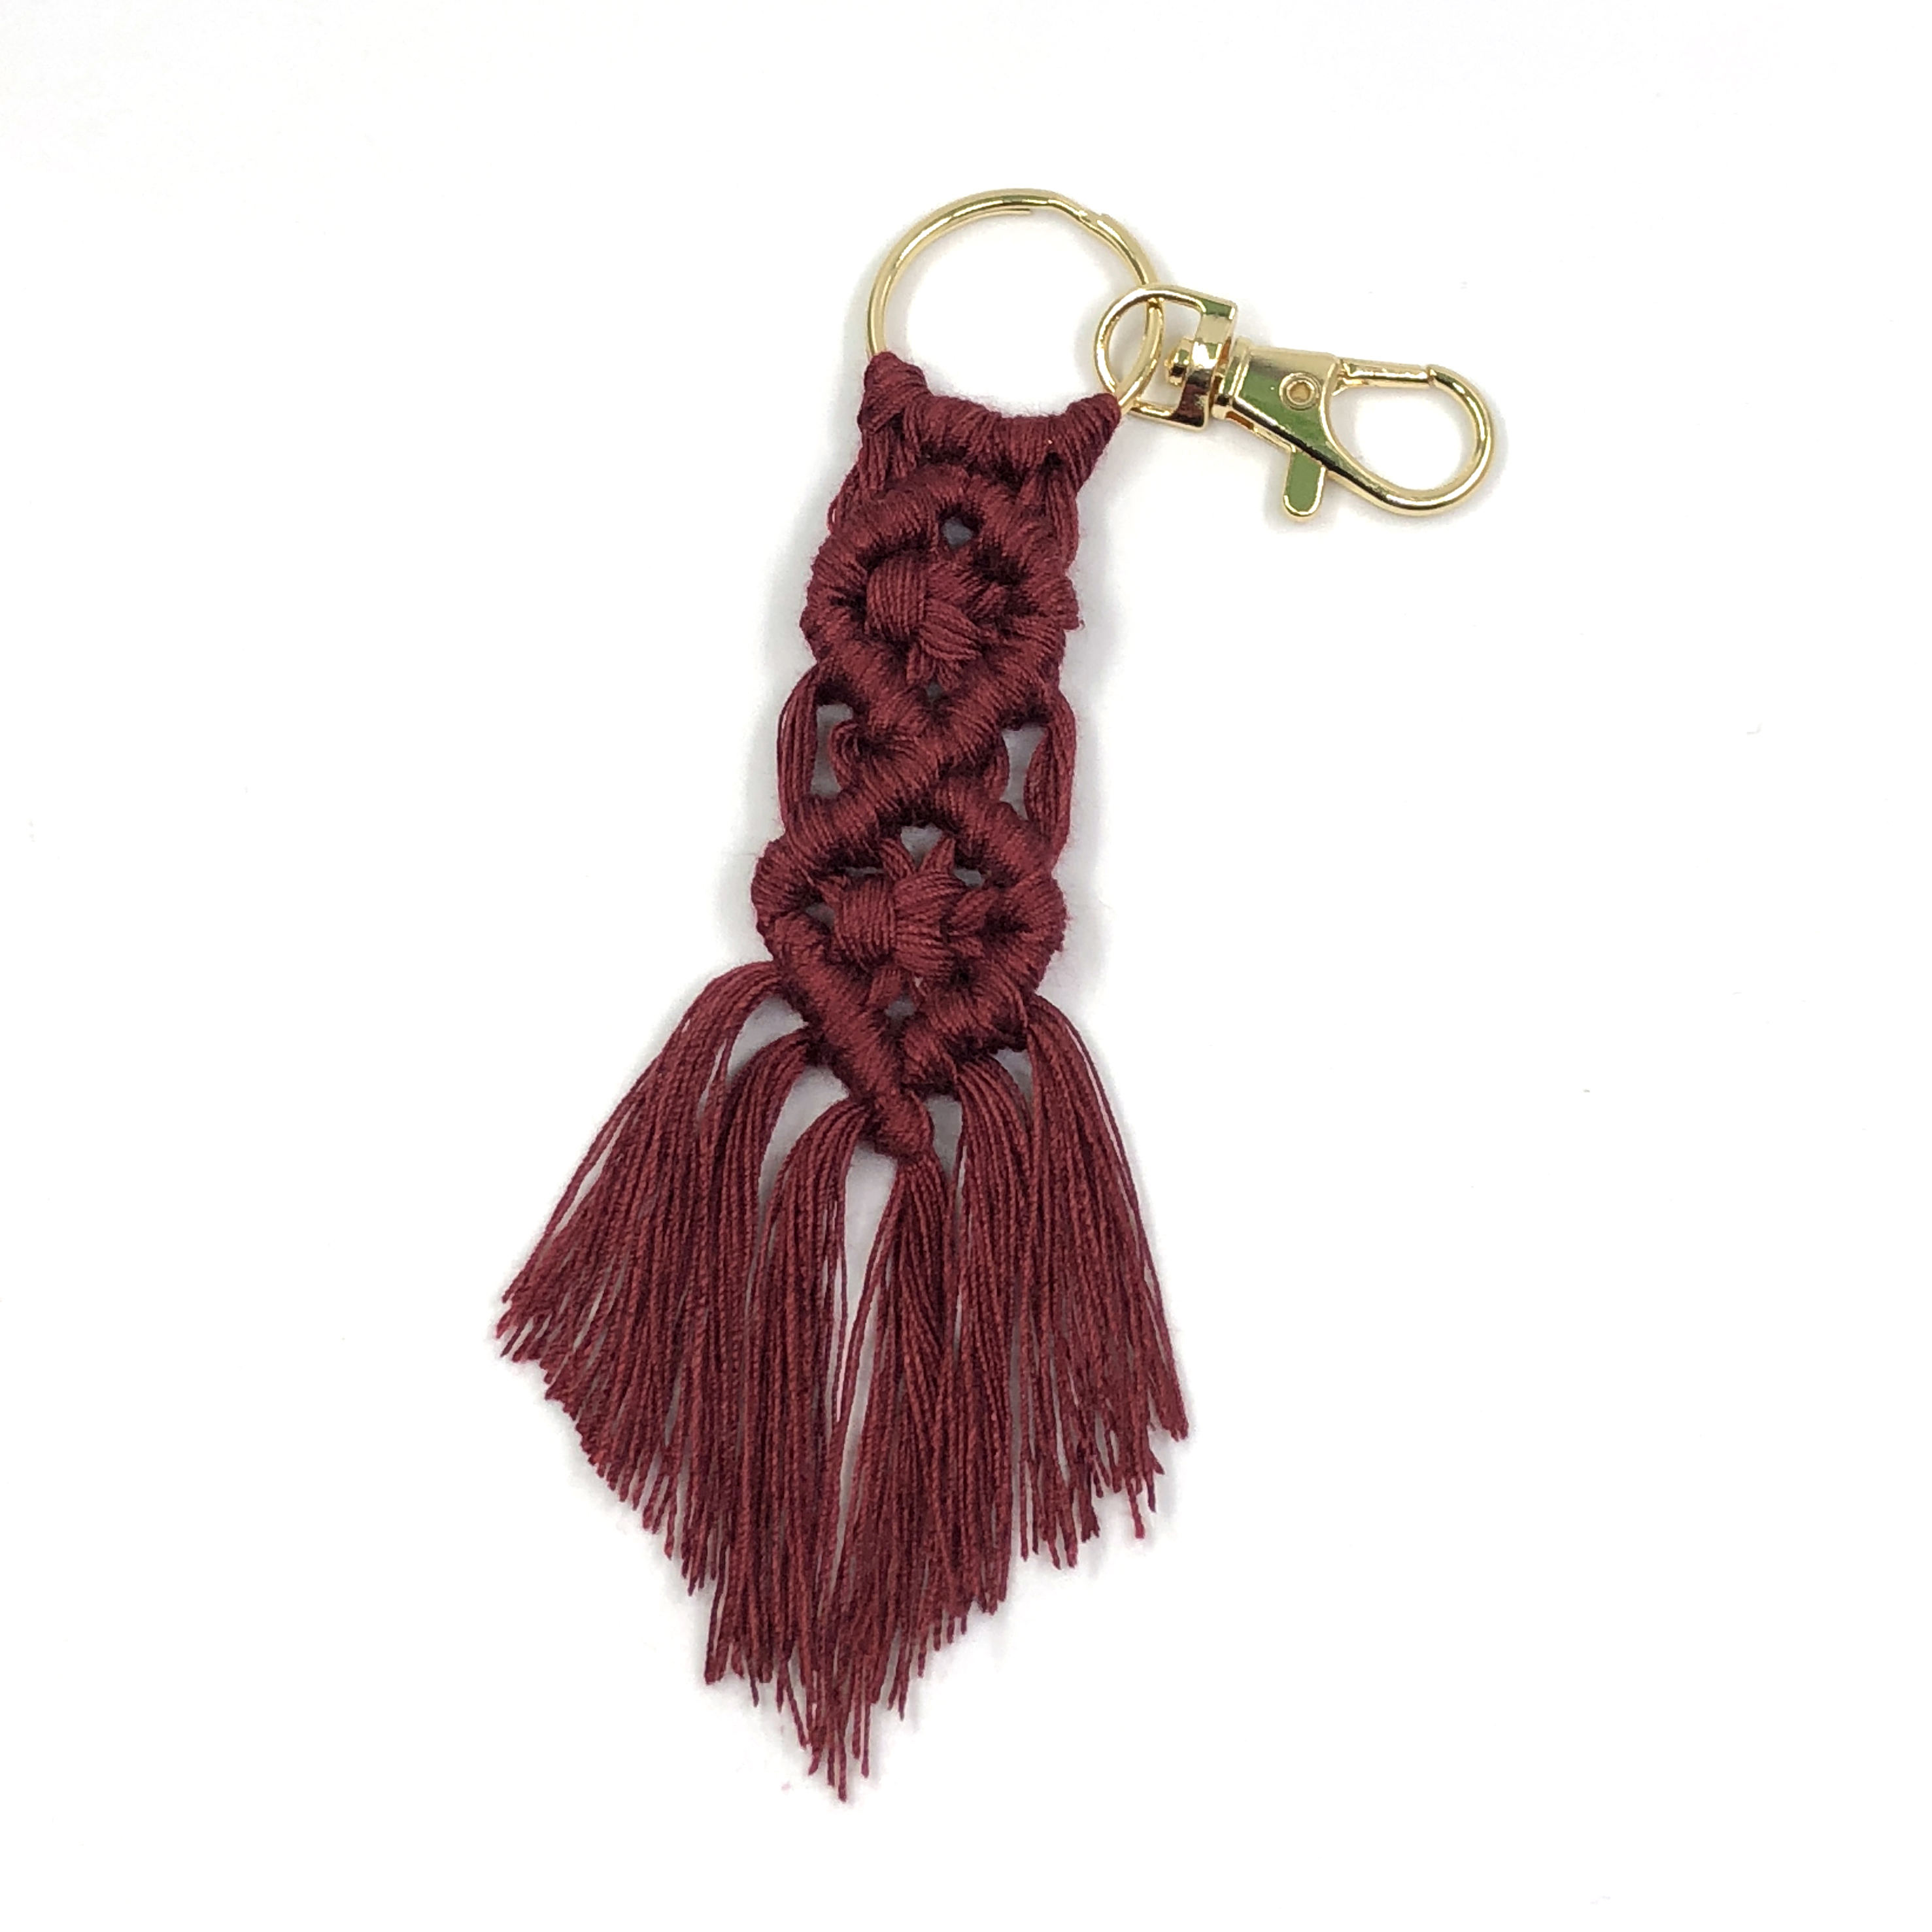 2020 Handmade Cotton Macrame Woven Rope Vintage Braided Keychain For Women Bohemia Tassel Keychain Bag Accessories